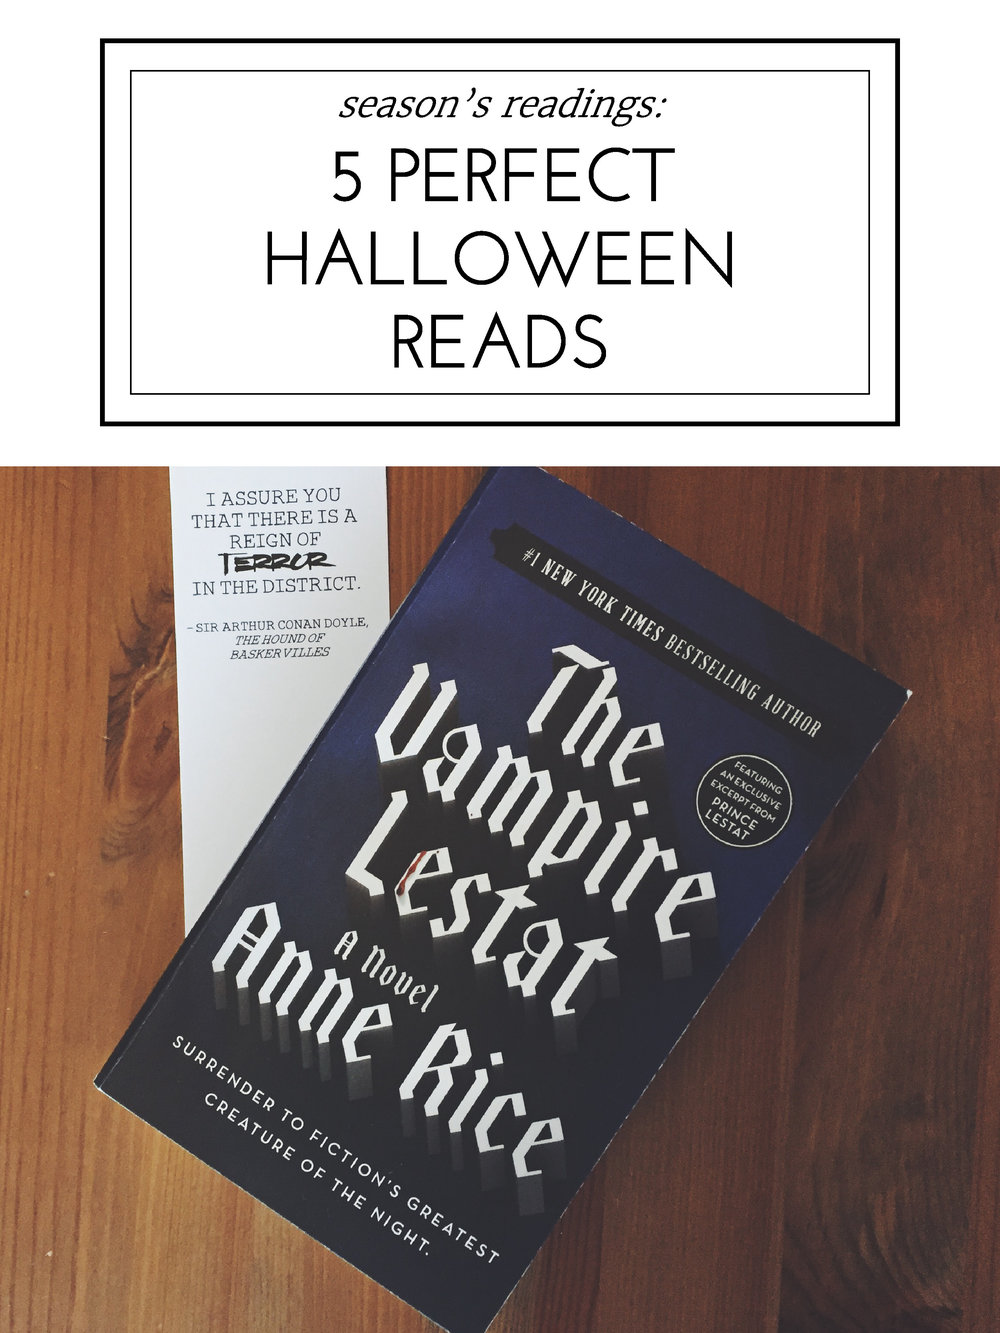 Blessed Bookworm Season's Readings: 5 Perfect Halloween Reads